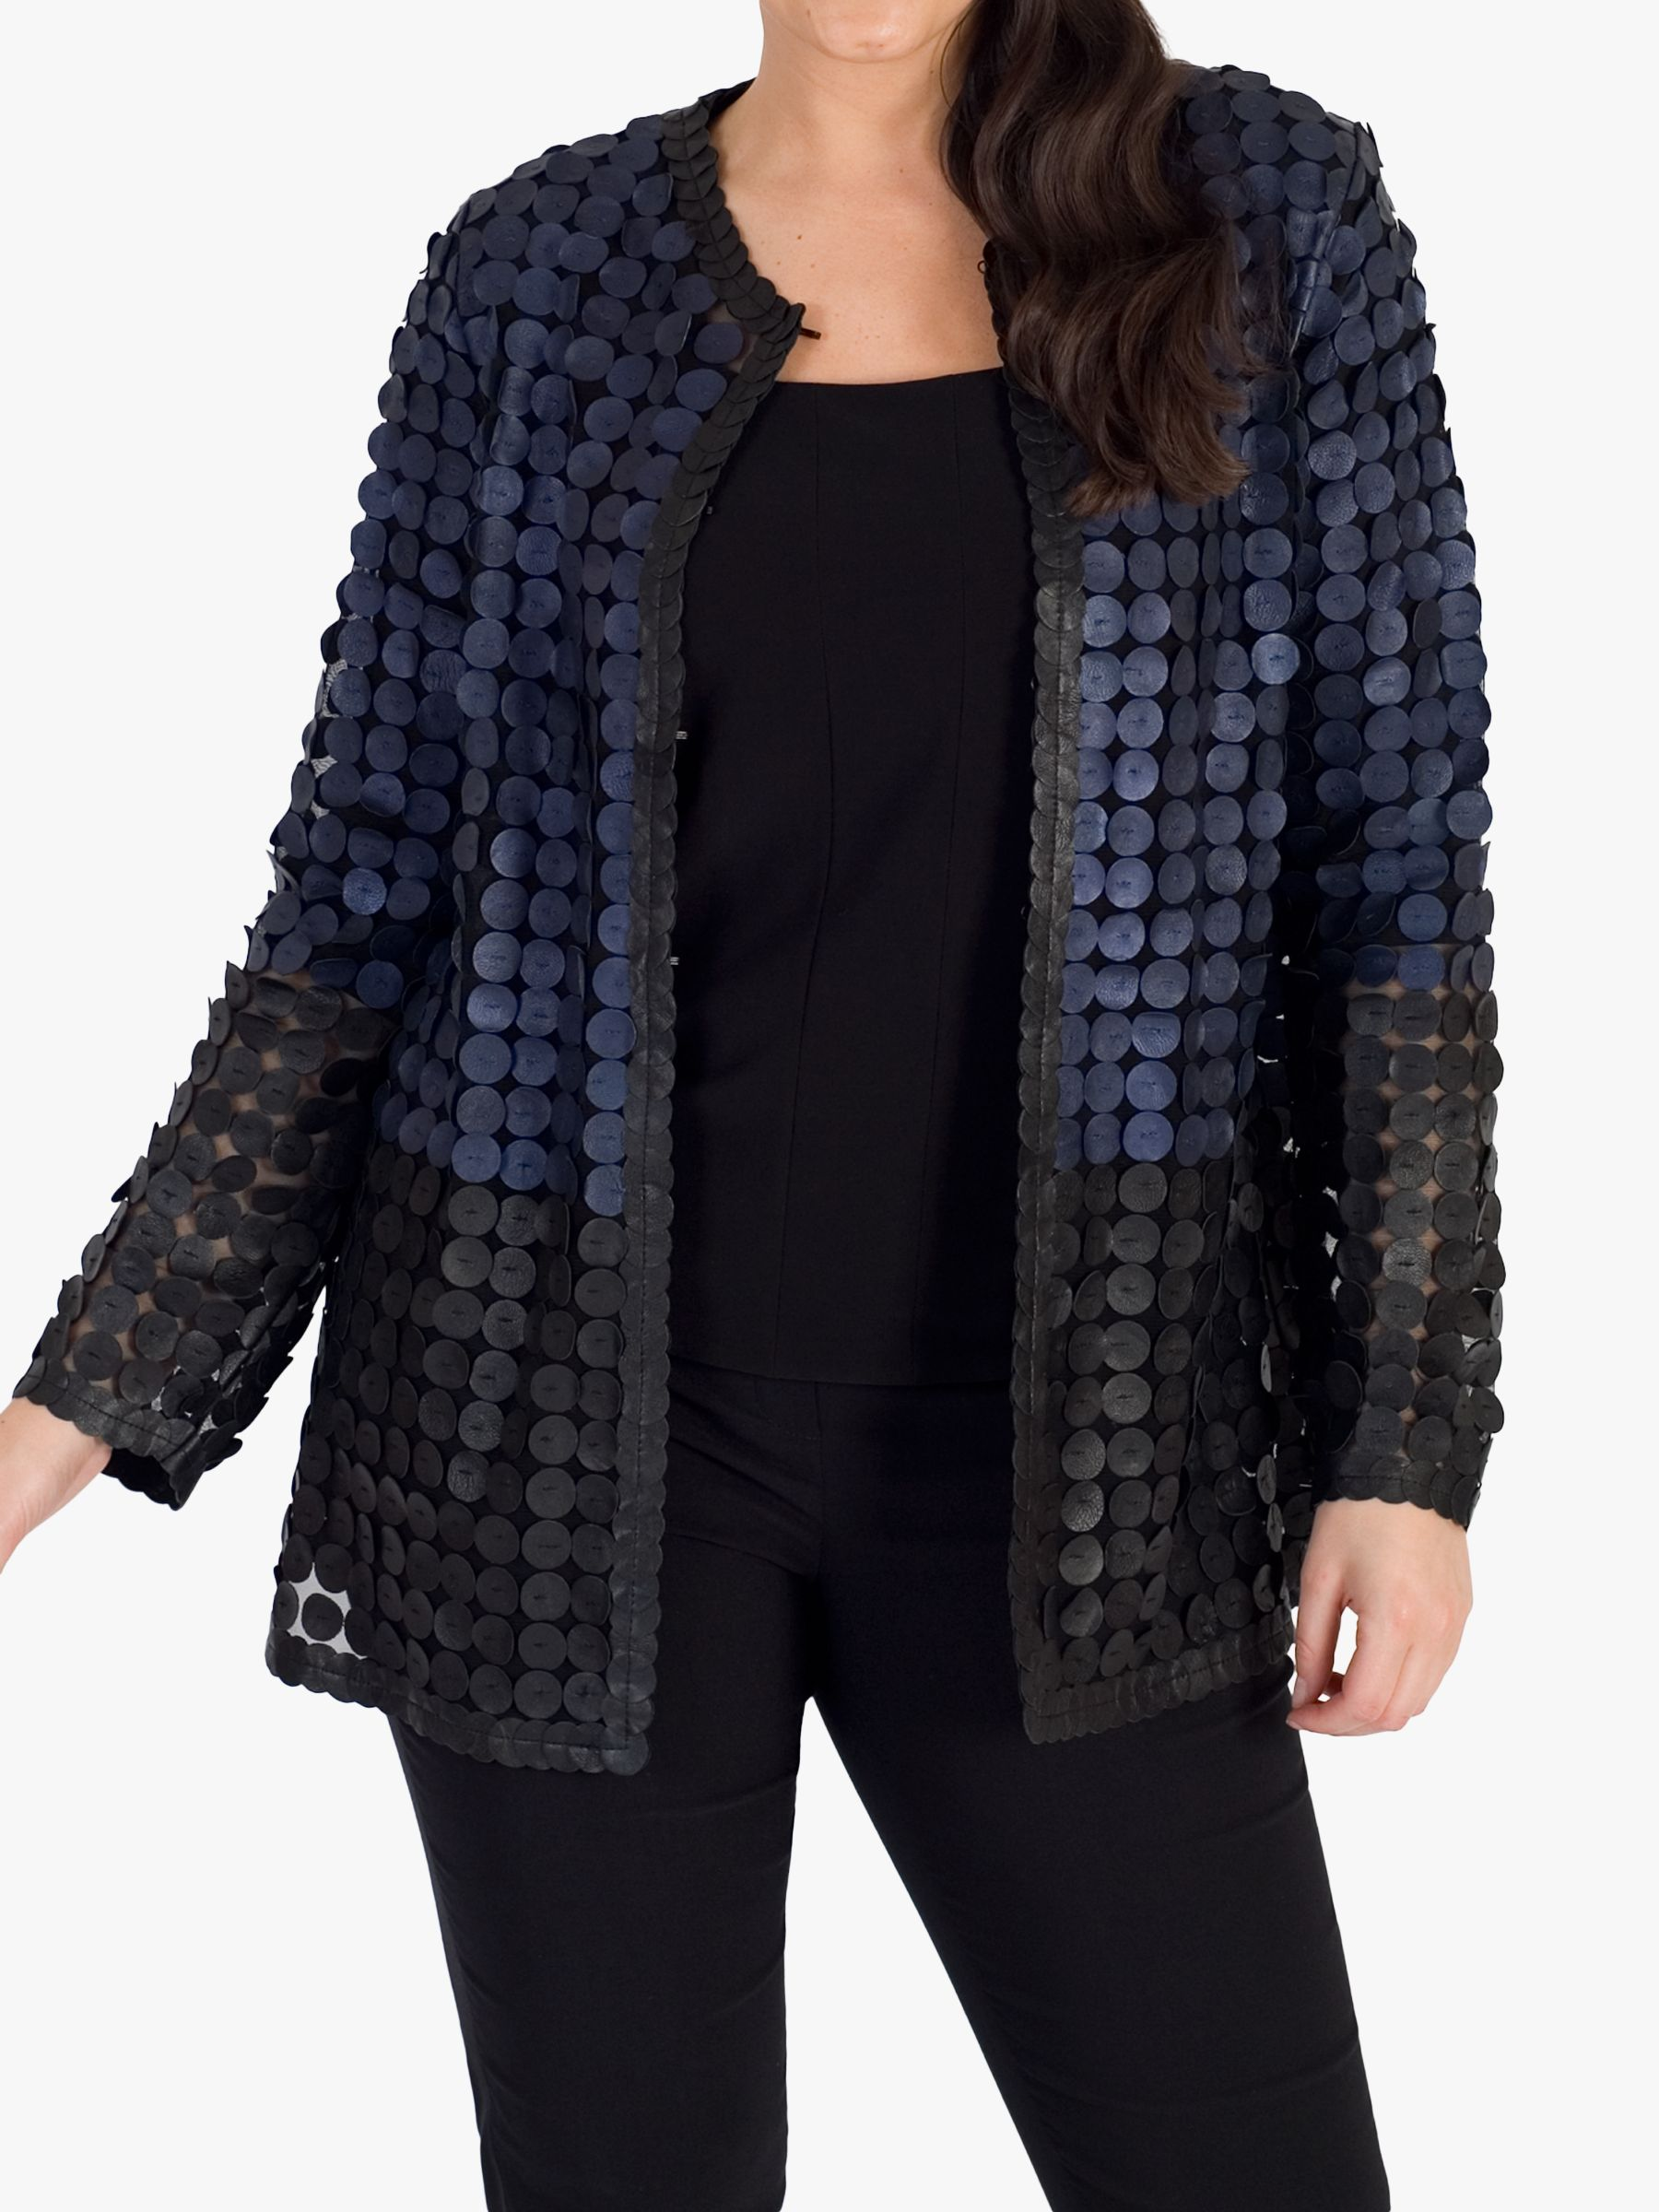 Chesca chesca Colour Block Disc Leather Jacket, Navy/Black